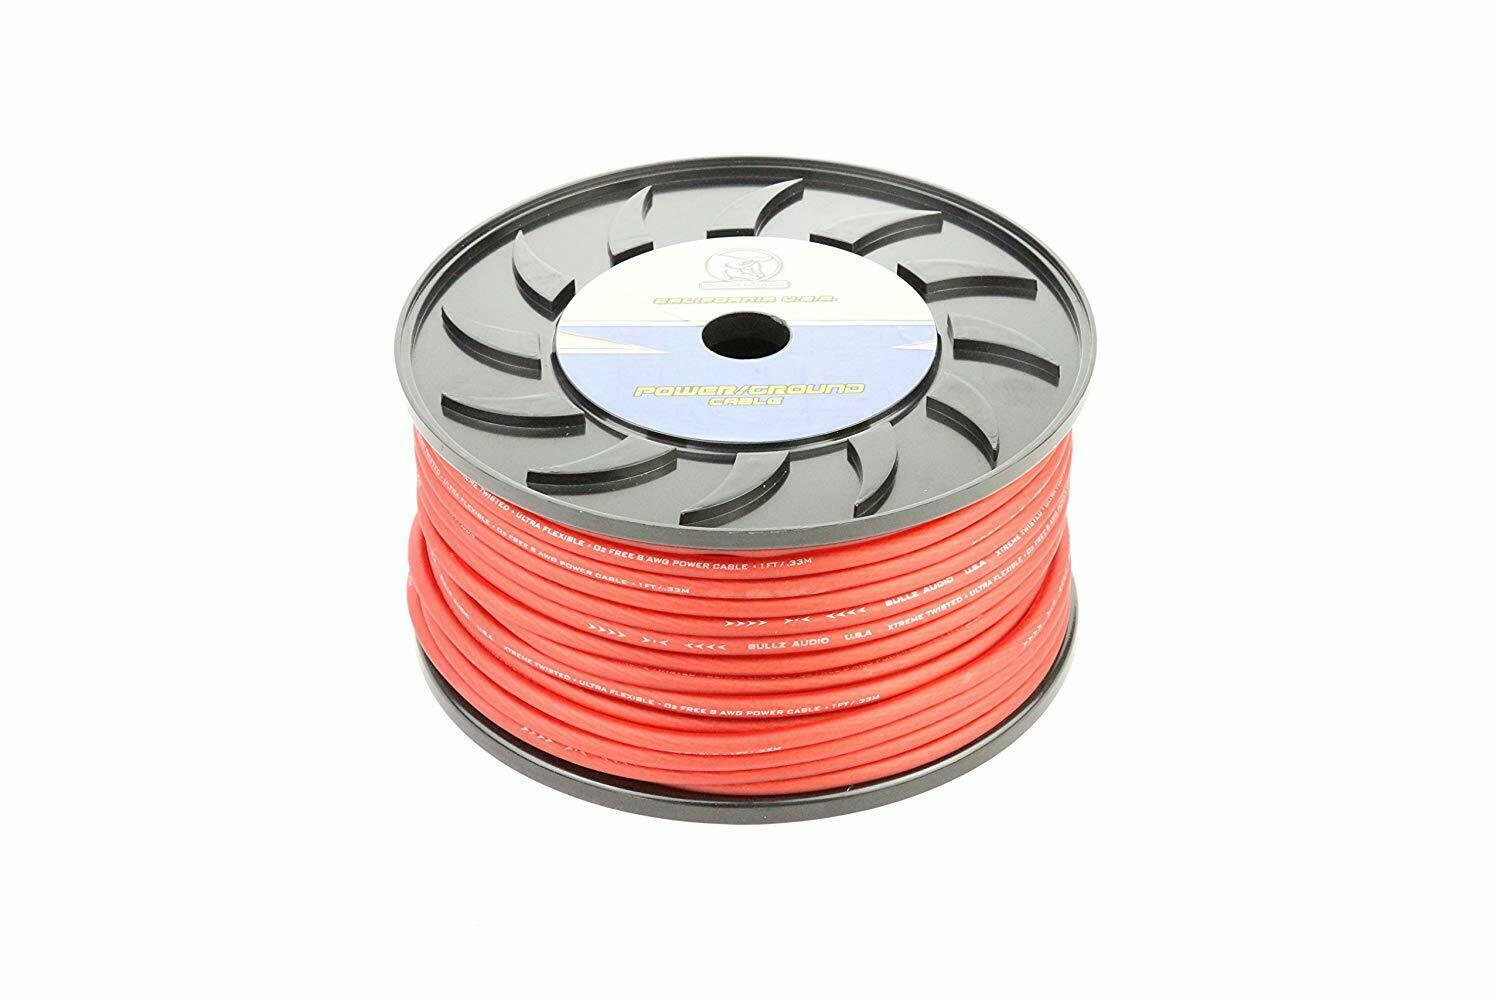 BULLZ AUDIO BPP8.200R 8 Gauge 200 FT RED Power Cable